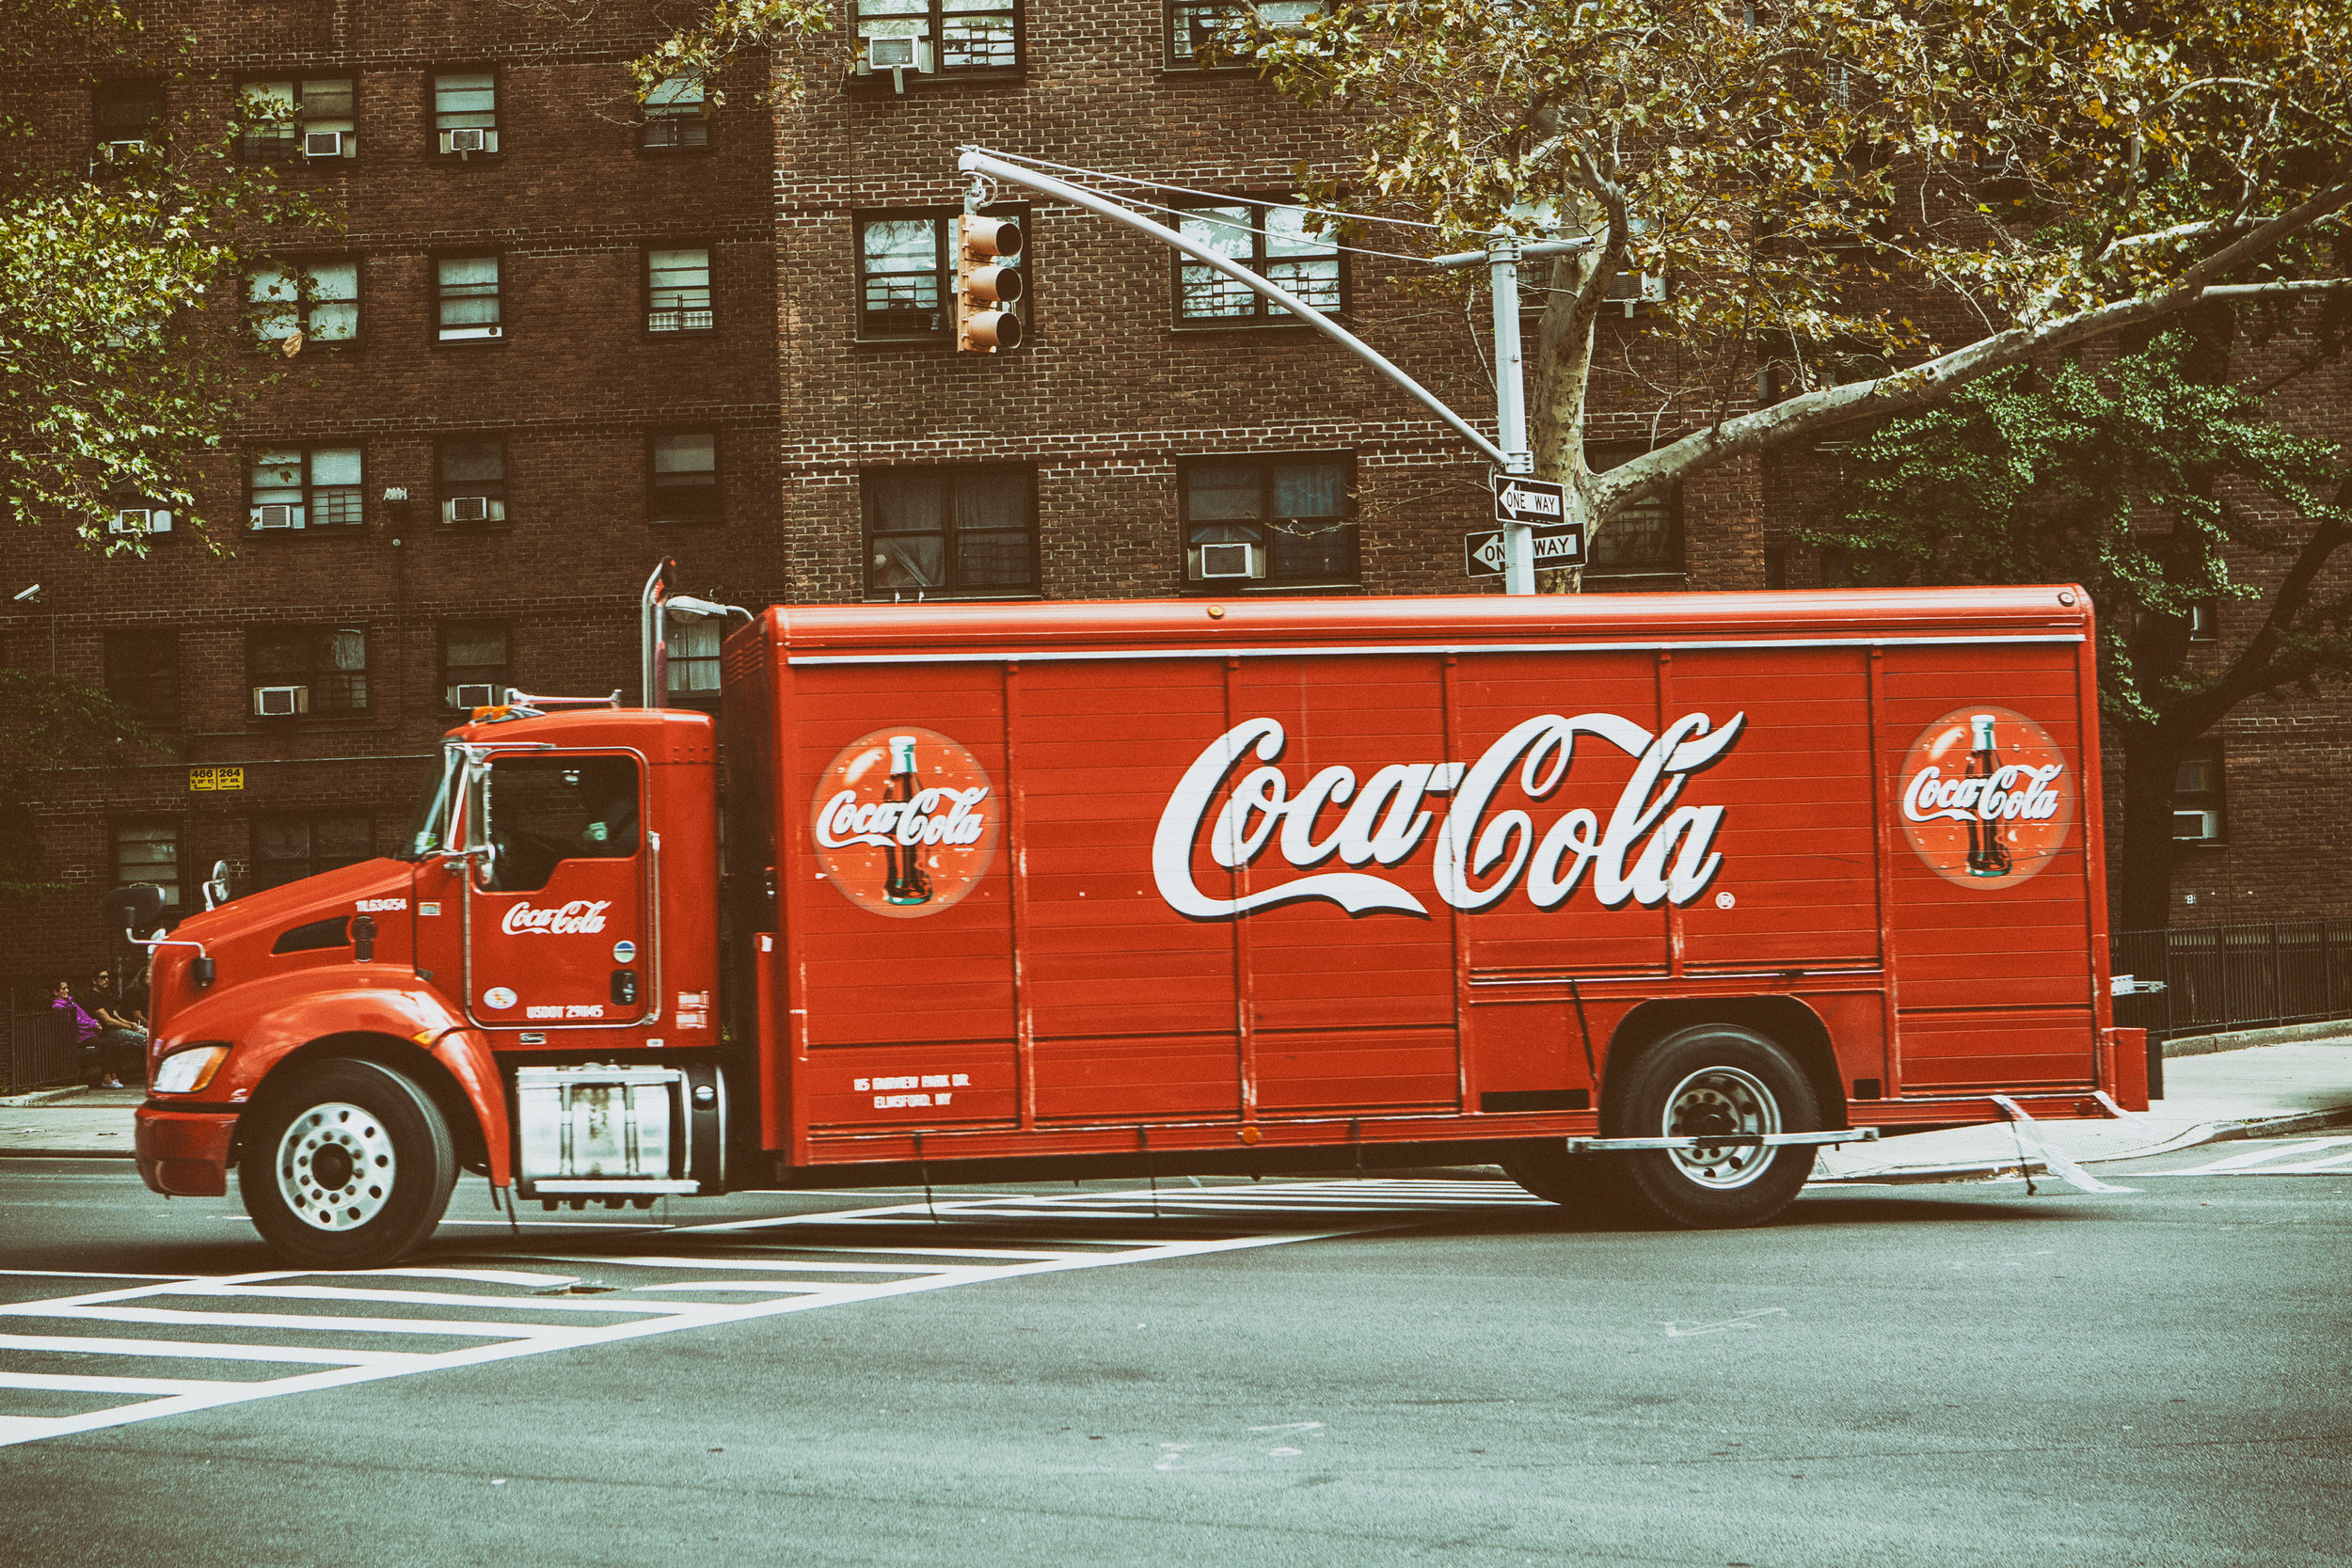 Coca Cola Van, USA. Photo by ISO Republic on Stocksnap.